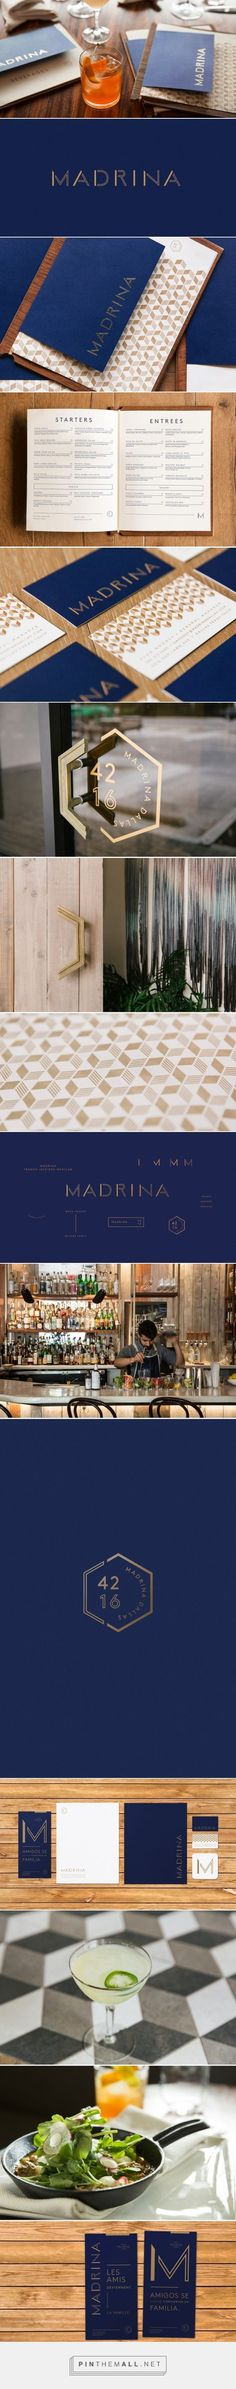 Madrina Restaurant Branding by Mast | Fivestar Branding – Design and Branding Agency & Inspiration Gallery: